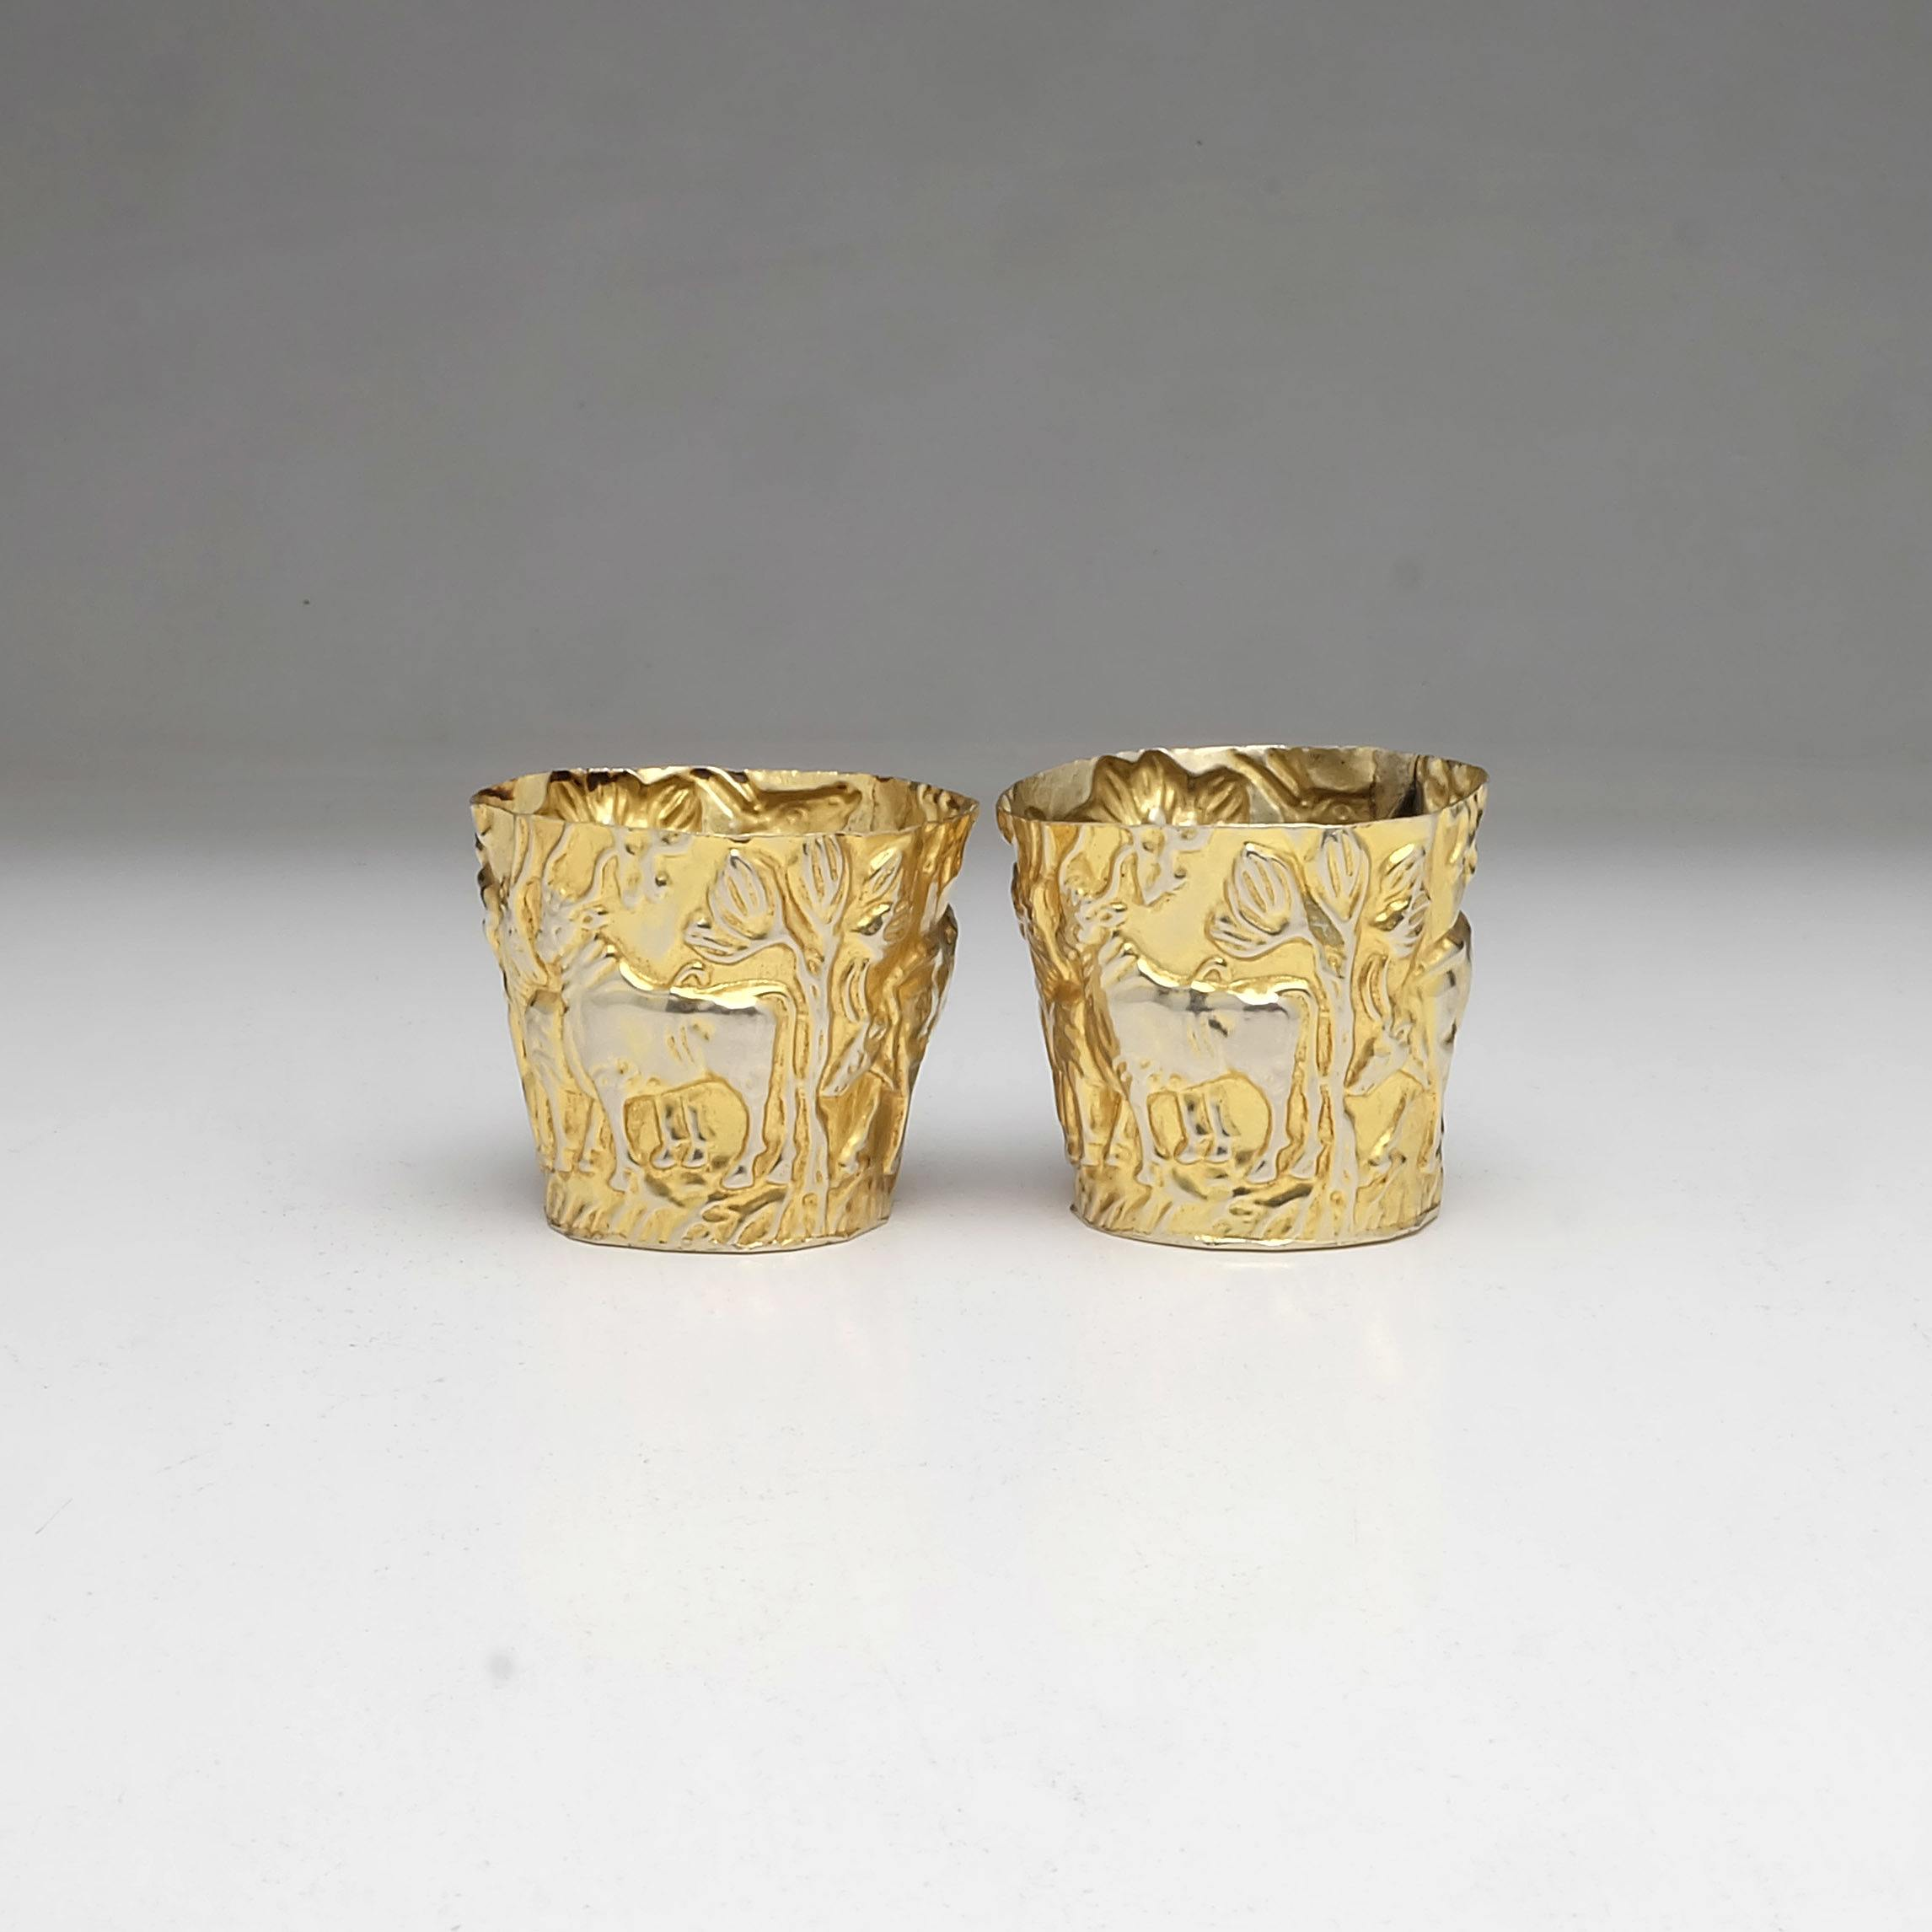 'Pair Silver Gilt Repousse Vodka Cups Probably Greek'